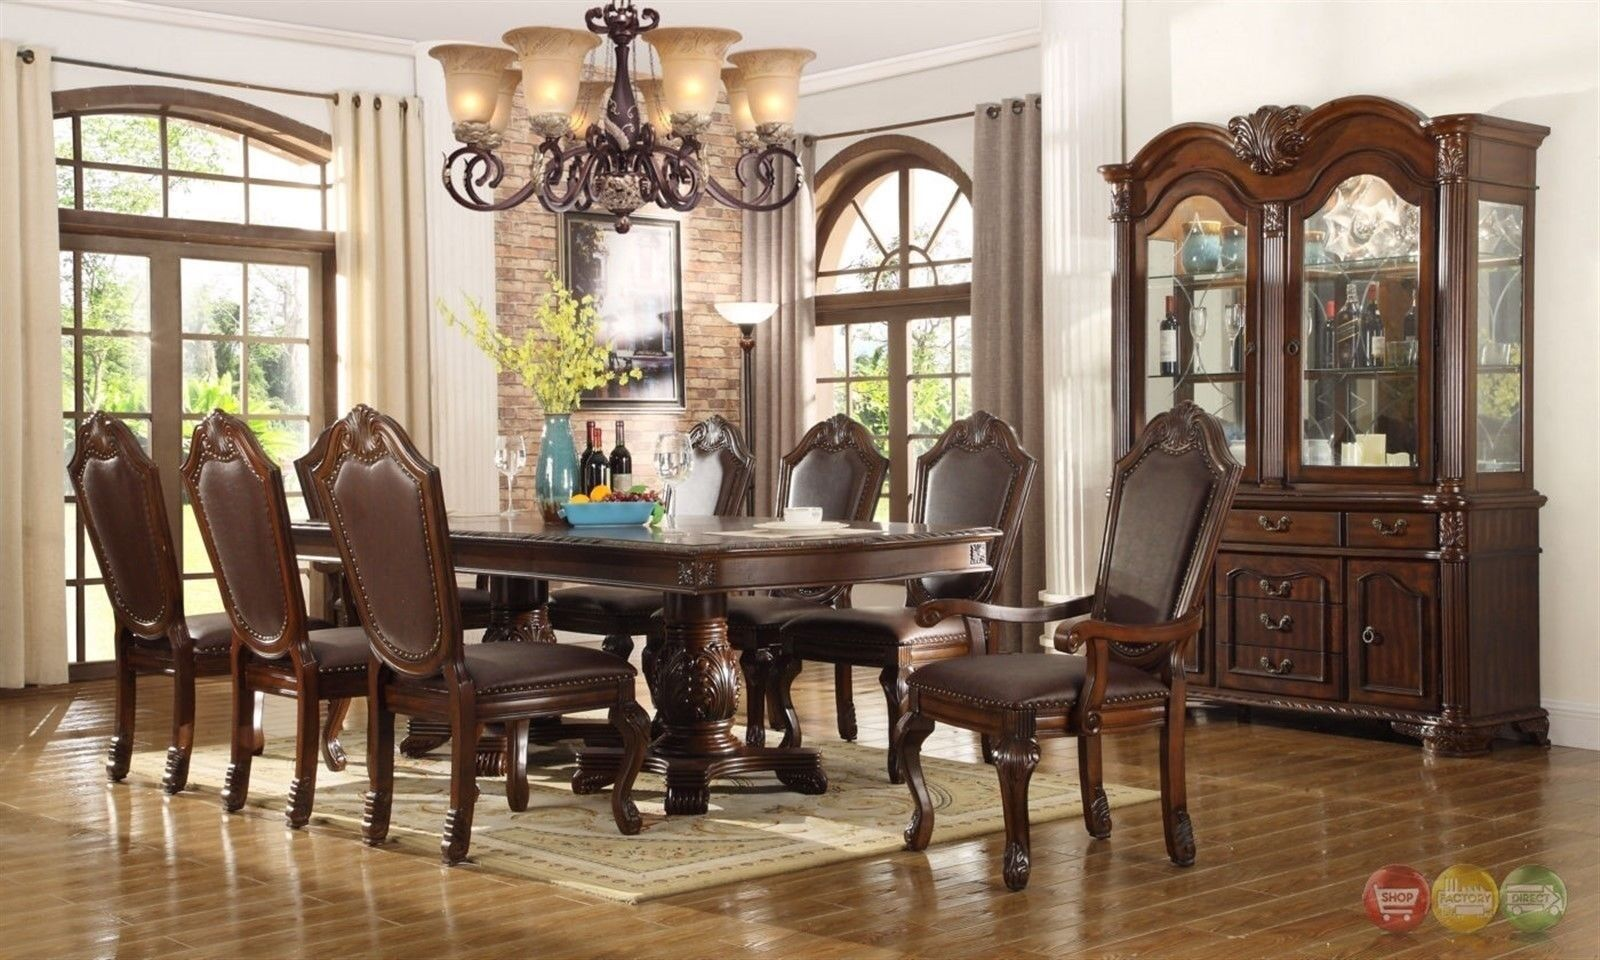 Chateau Traditional 7pc Formal Dining Room Furniture Set Pedestal Table Chairs Ebay